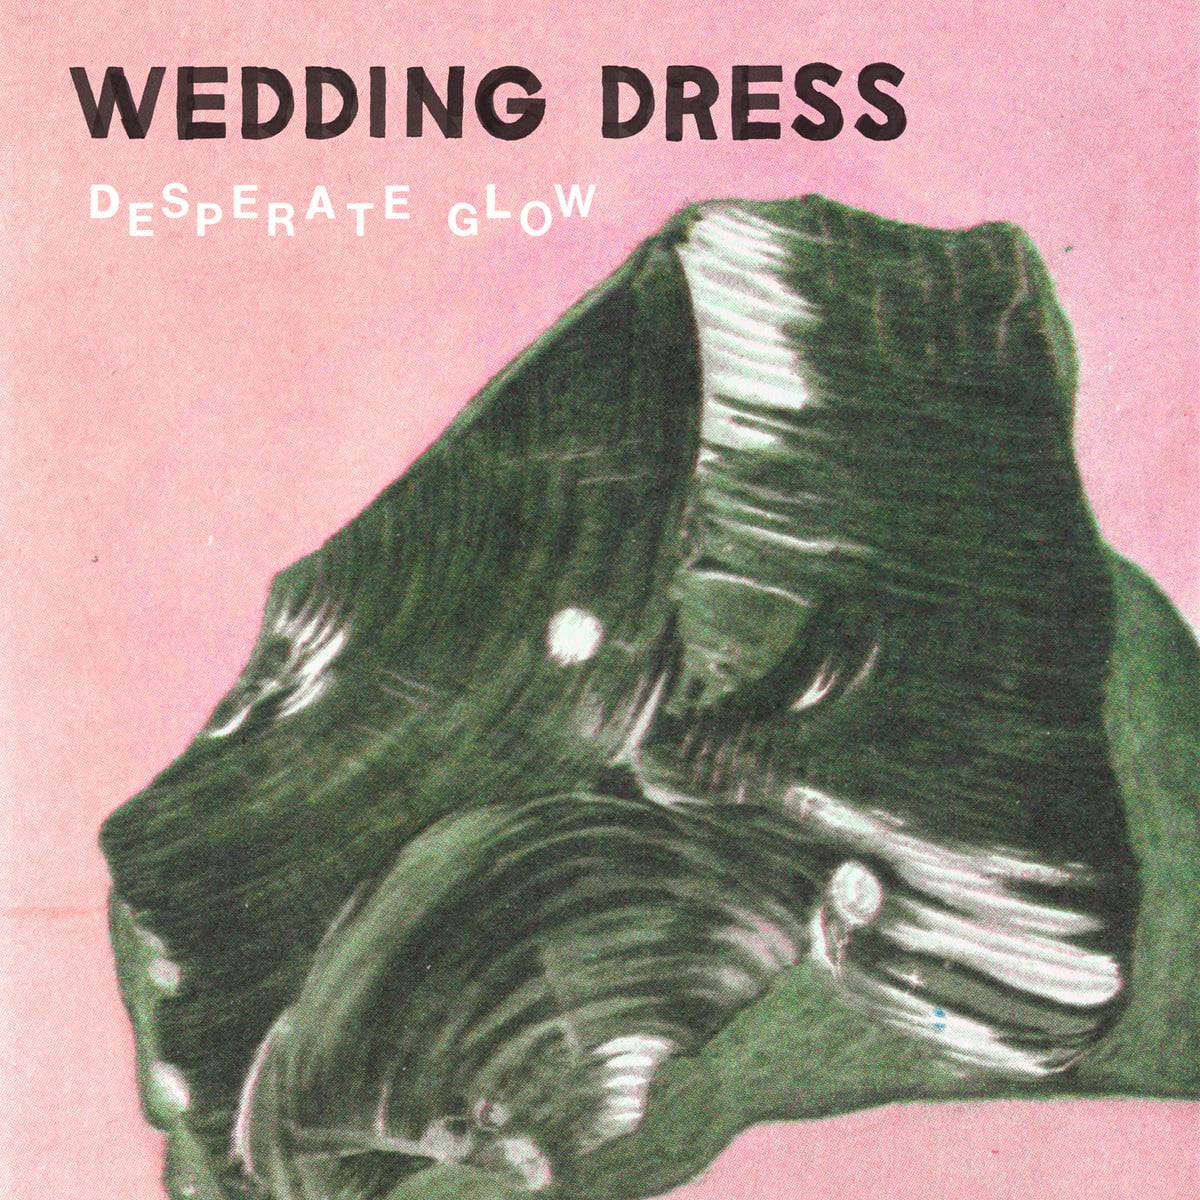 In 2014 I mixed and help record Chicago's Wedding Dress which resulted in the band's first full-length release.